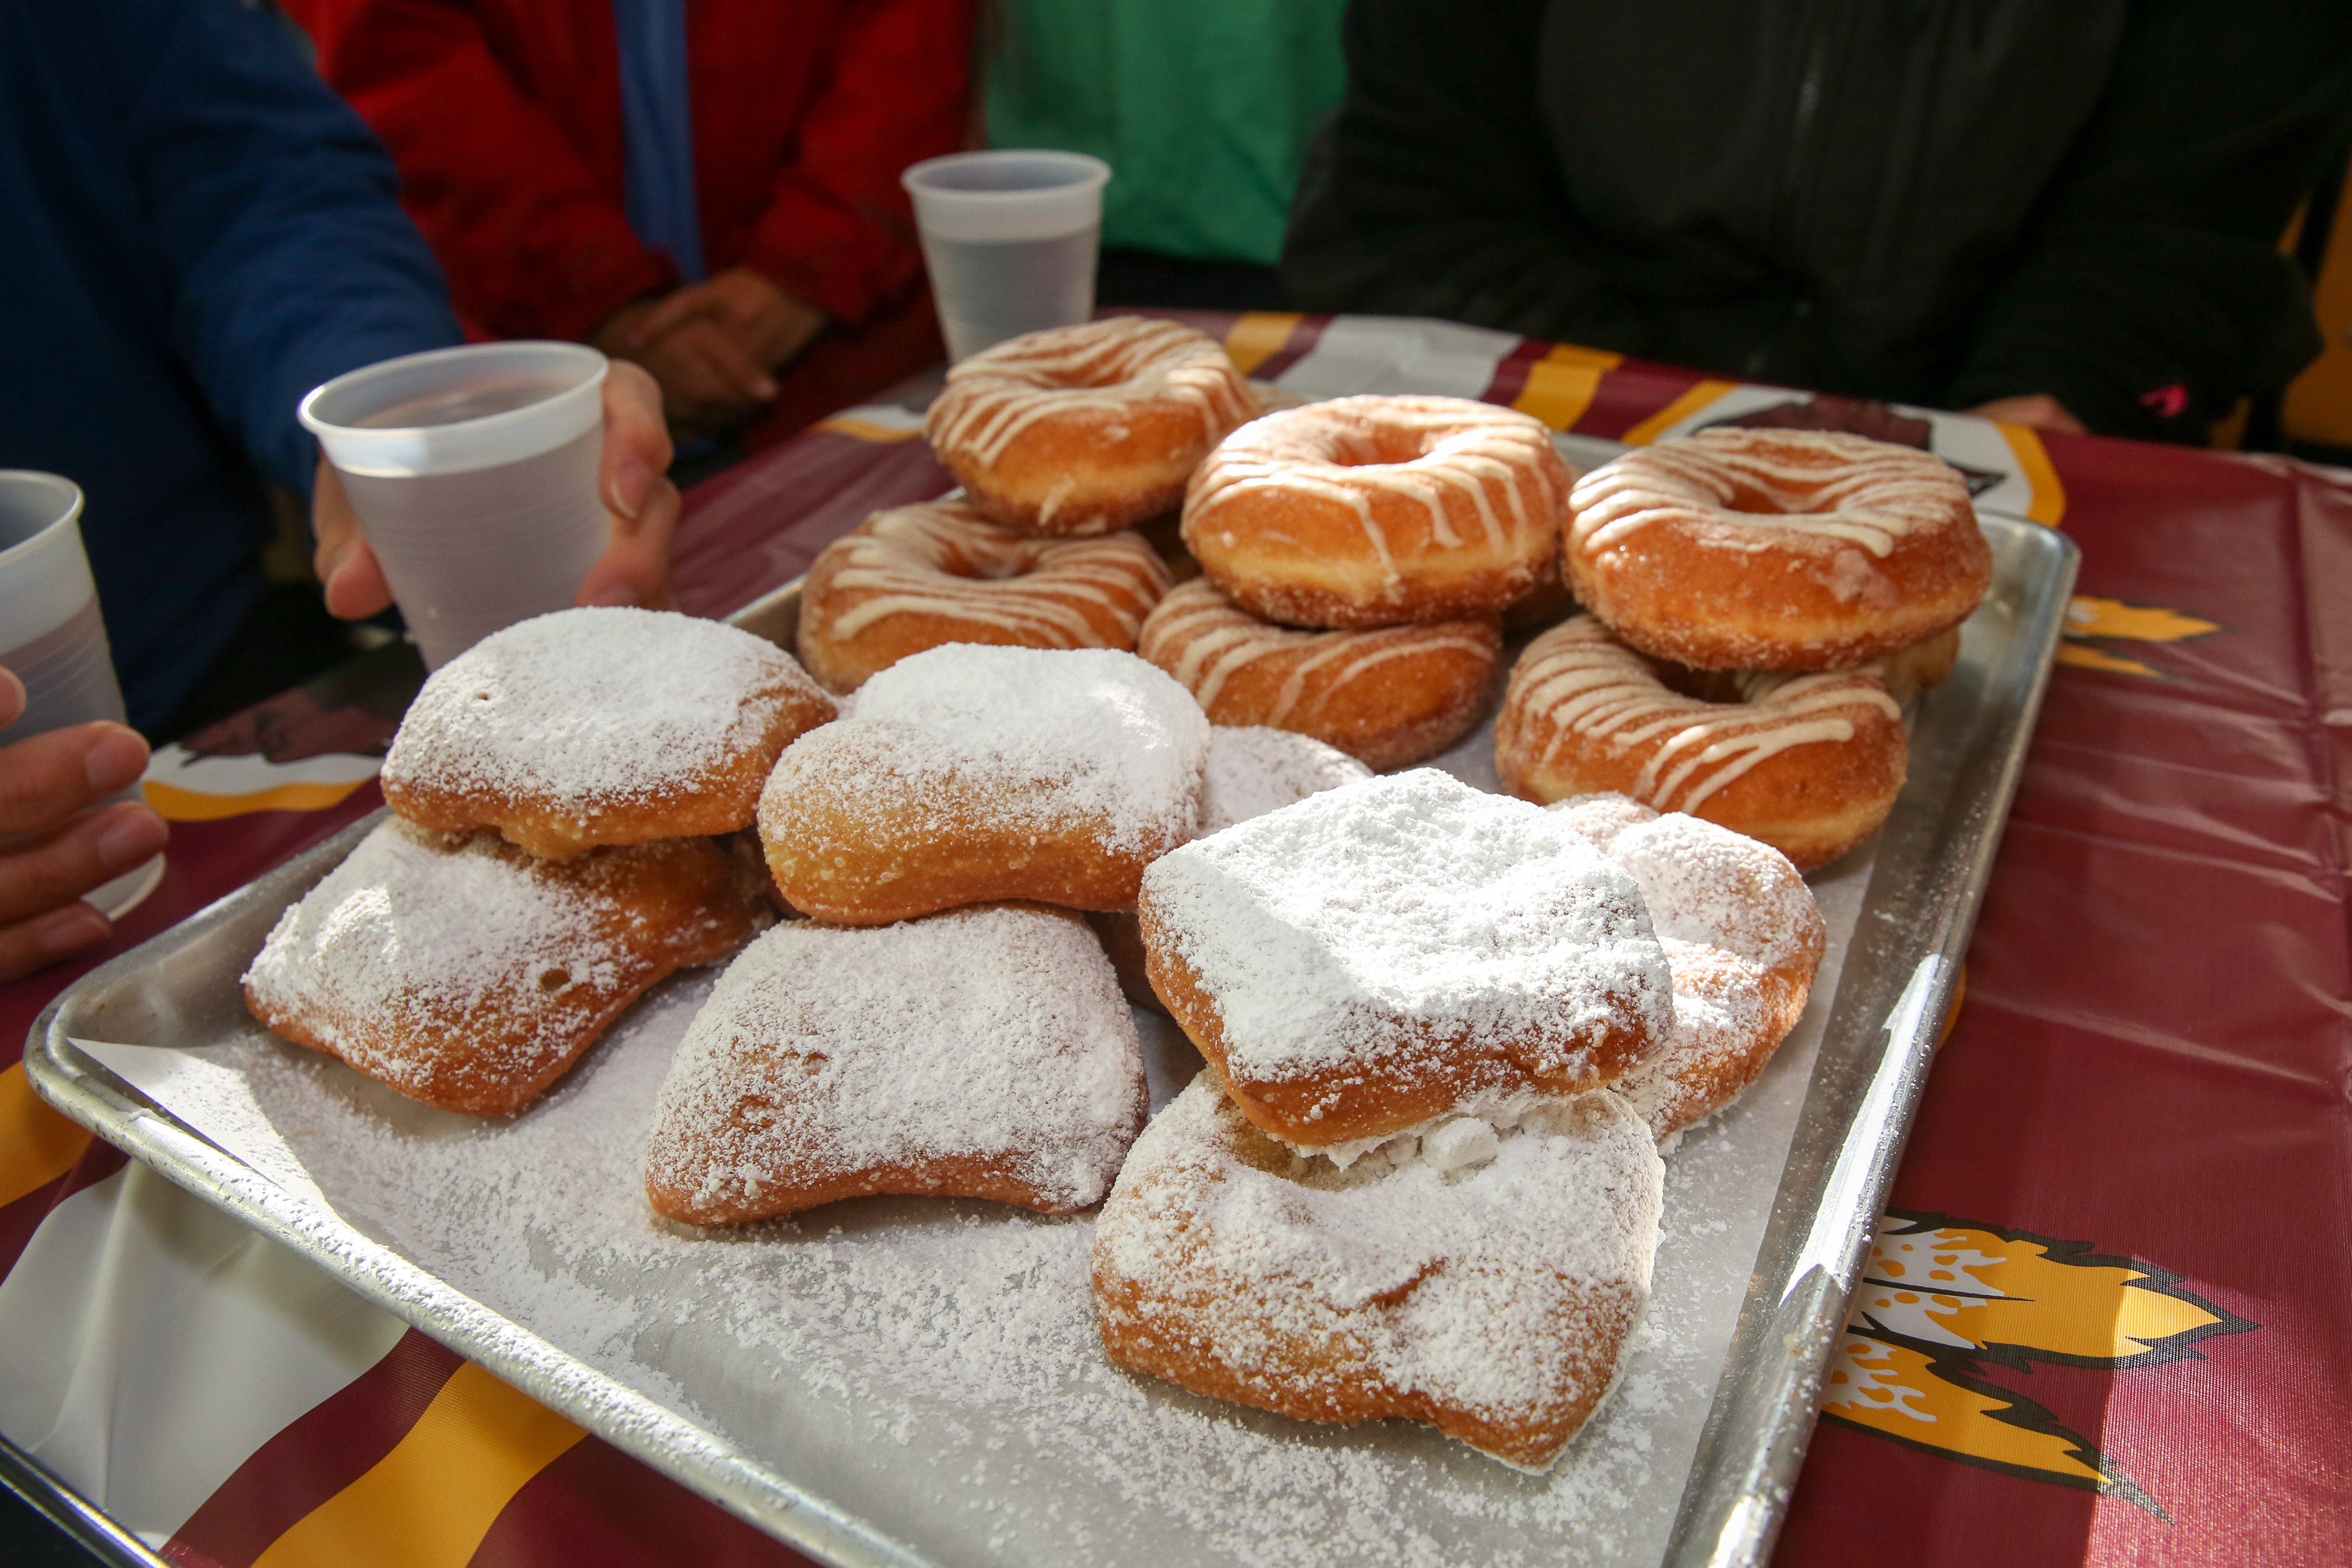 The New Orleans Saints only play the Washington Redskins once every two years and Chef David Guas marked the occasion by hosting a beignet and doughnut eating contest at Bayou Bakery in Arlington. The doughnuts were provided by District Doughnut to represent D.C. and Guas prepared the beignets. The nine challengers had 90 seconds to eat as many items as possible. The winner walked away with $150, but on the field the Saints triumphed by three points. (Amanda Andrade-Rhoades/DC Refined)